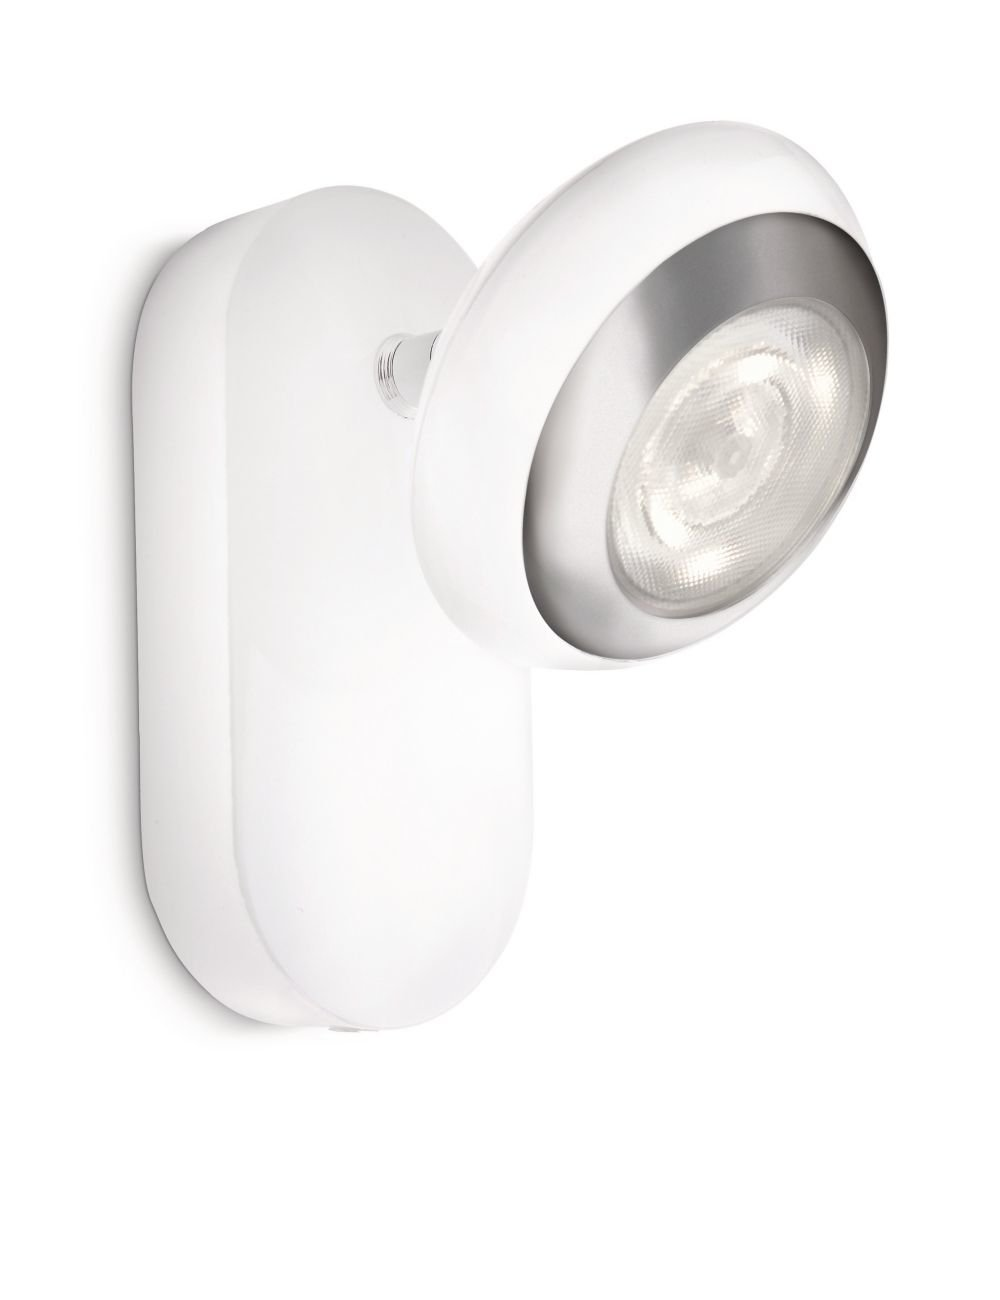 Philips myLiving Sepia - Foco de pared, LED, 1 luz, IP20, luz blanca cálida, 15000 h, color blanco 915004146801 100 12 30